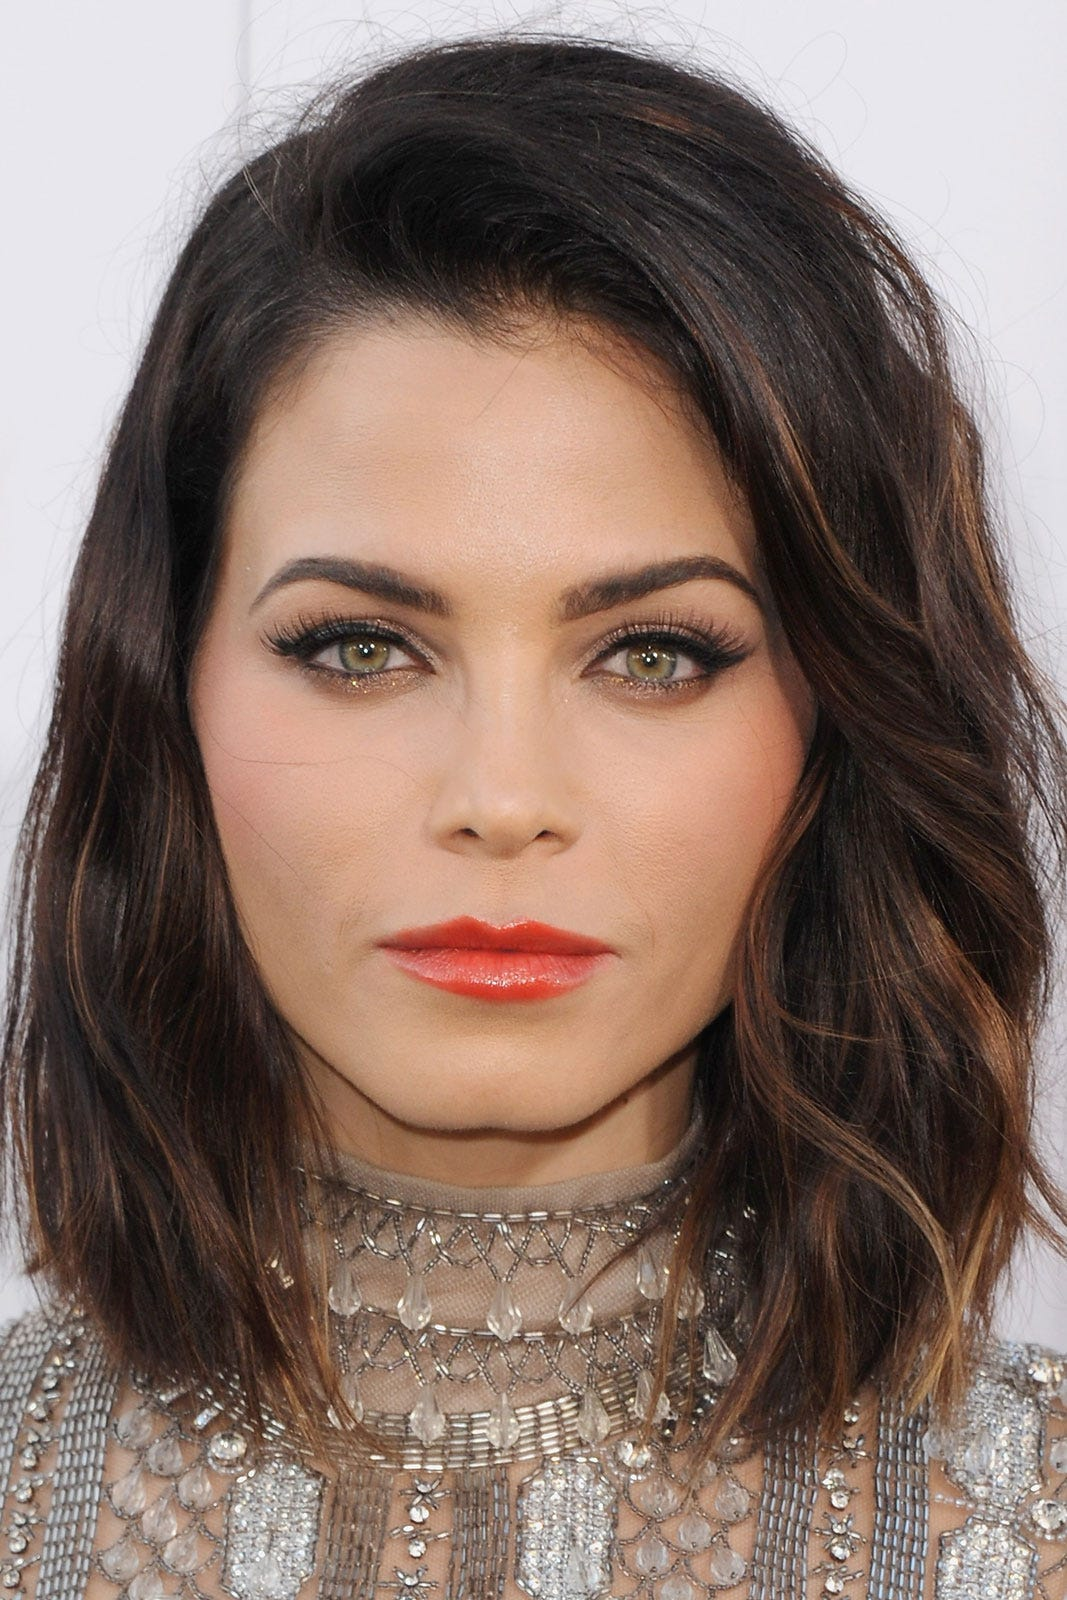 Jenna Dewan Birthday, Beauty Looks Over The Years